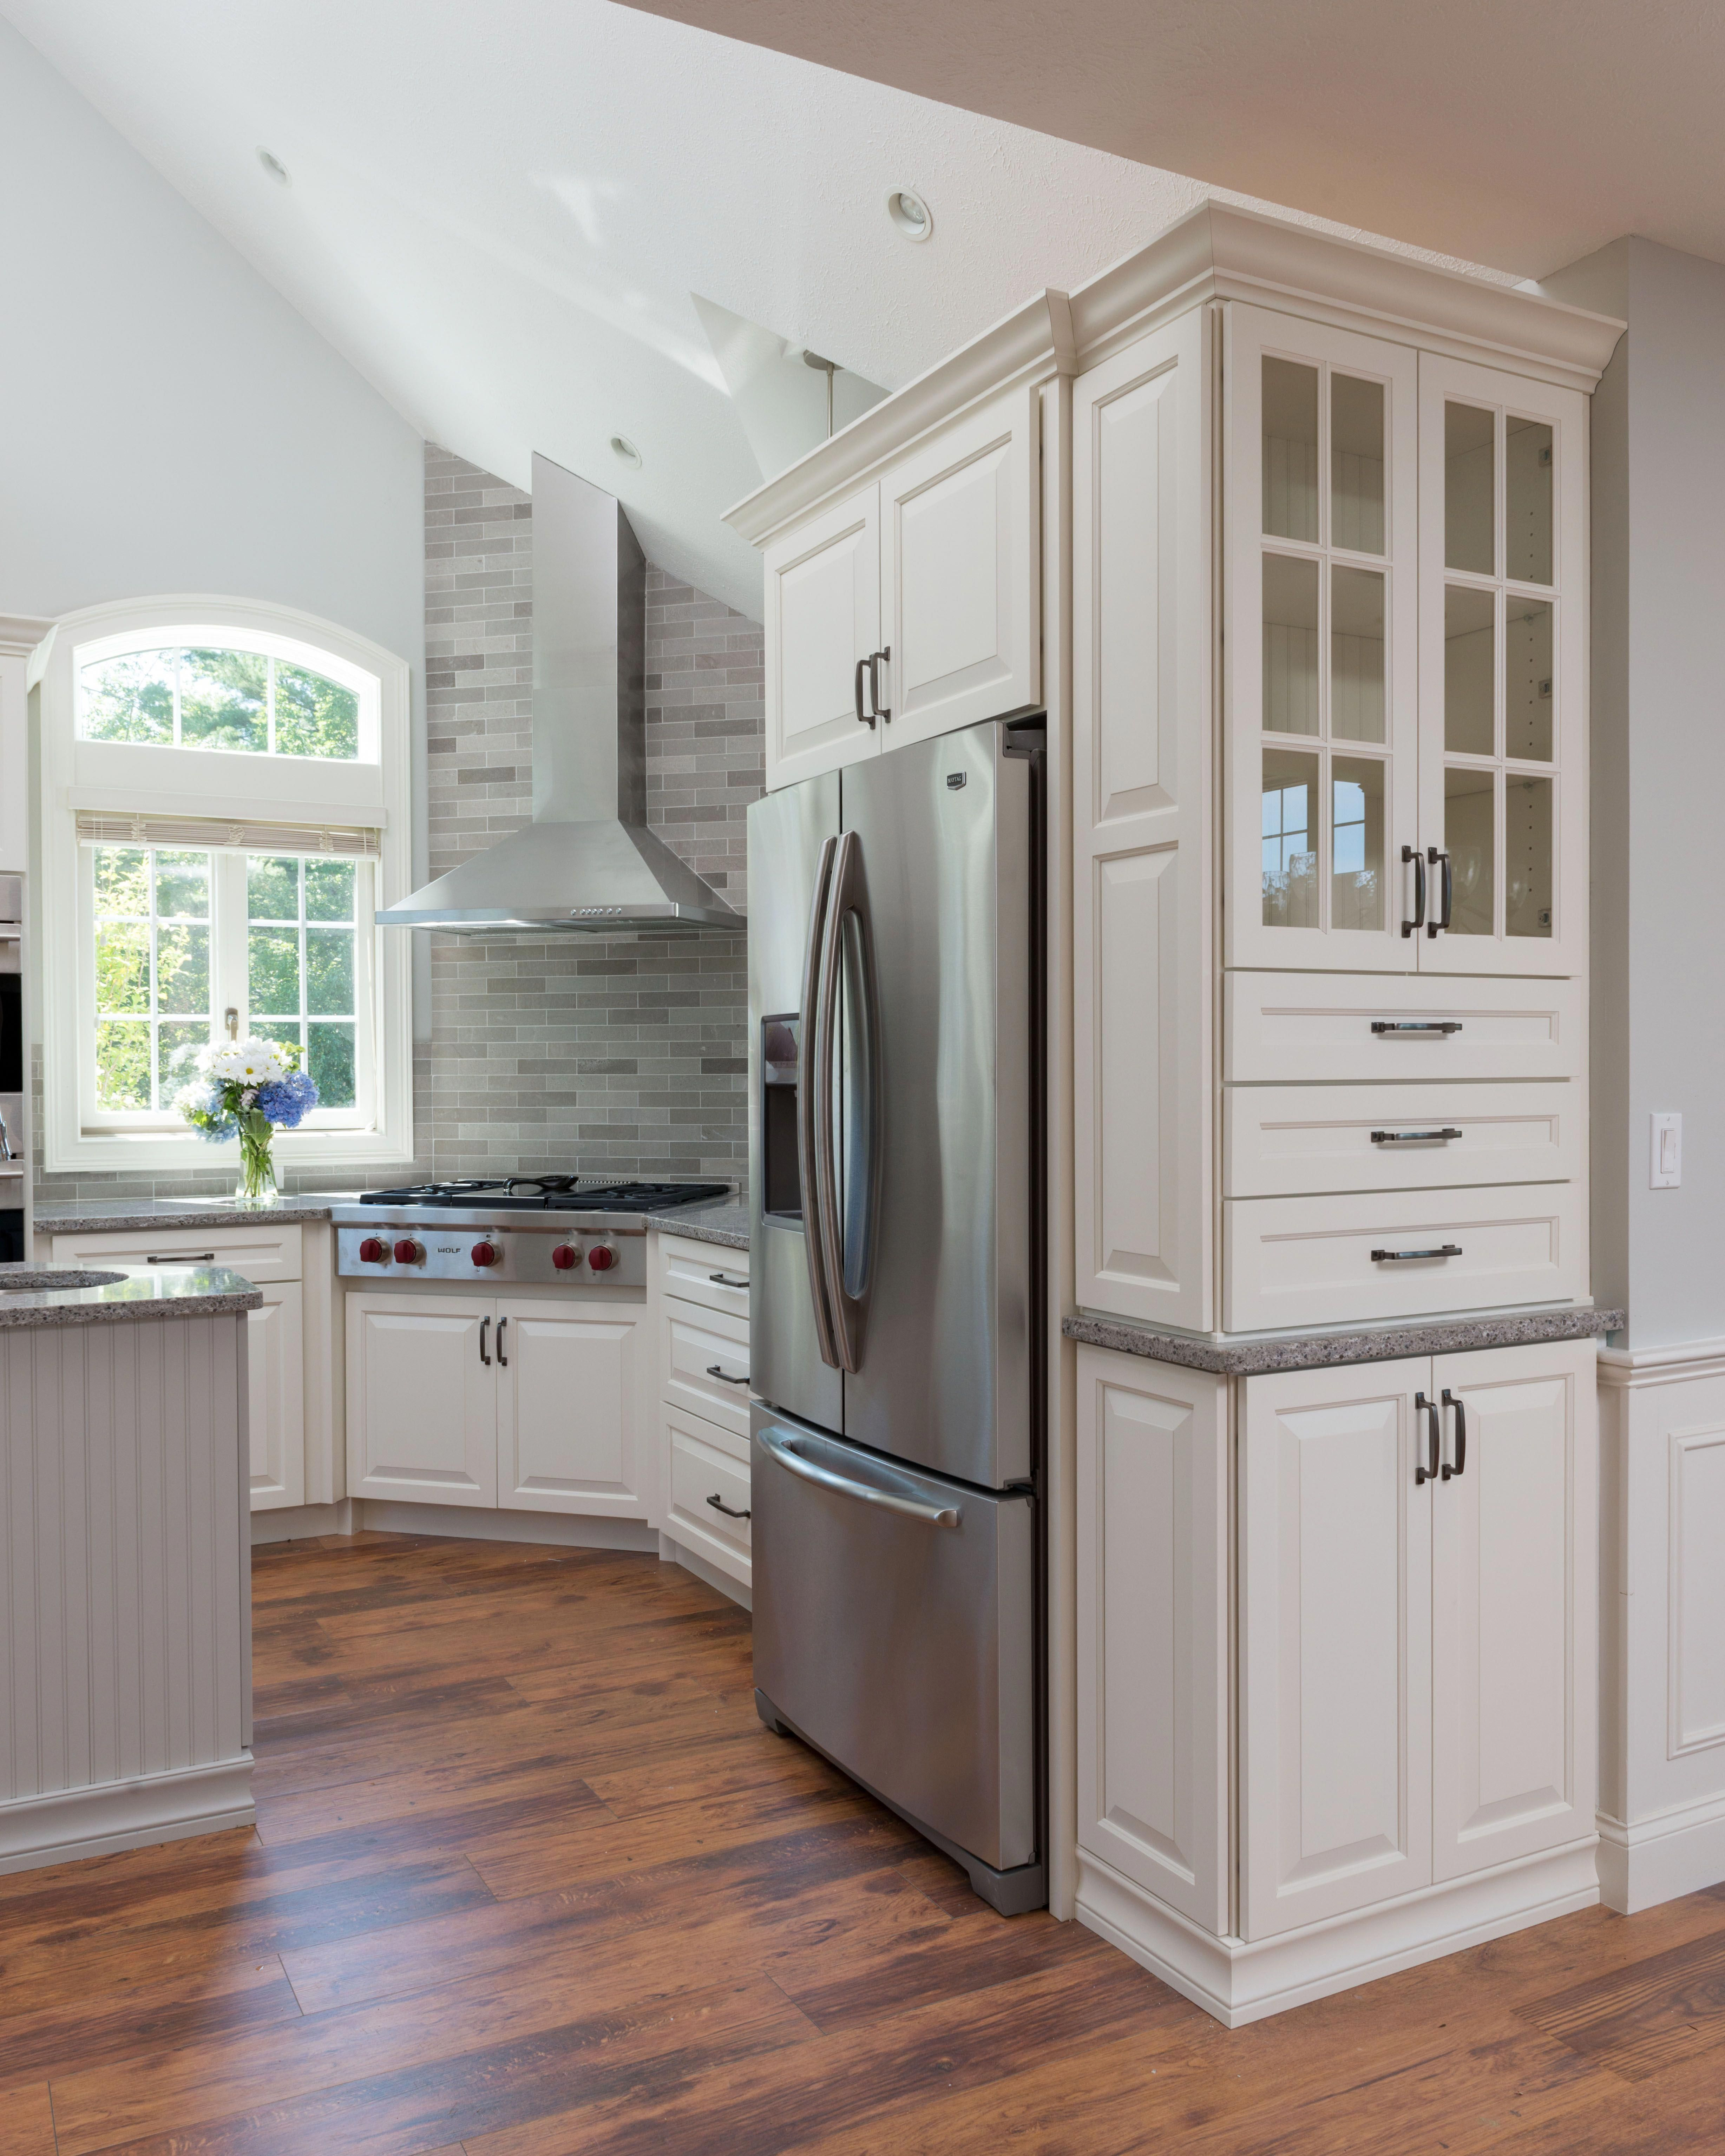 Make Sure You Visit Our Domain For Lots More Pertaining To This Wonderful Photo Rustickitc Kitchen Cabinet Design Kitchen Design Small Custom Kitchen Cabinets